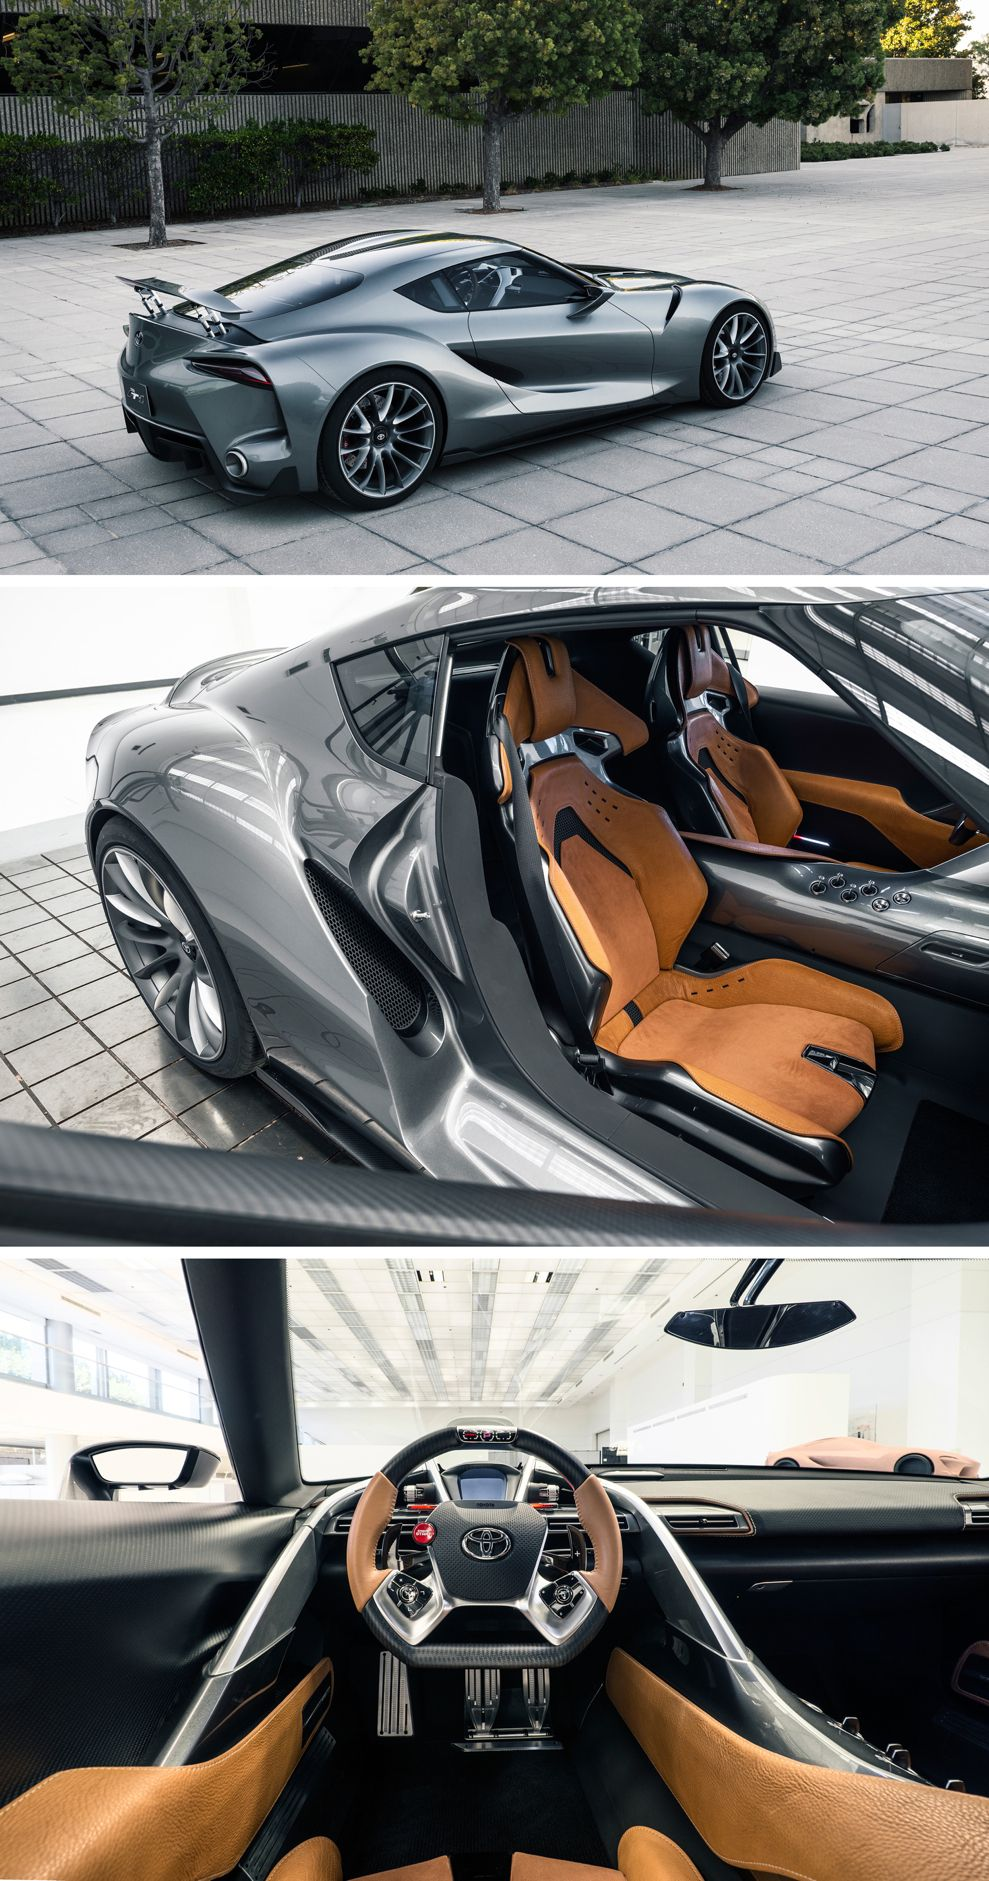 2018 toyota supra automotive pinterest toyota supra toyota 2018 toyota supra automotive pinterest toyota supra toyota and cars fandeluxe Image collections